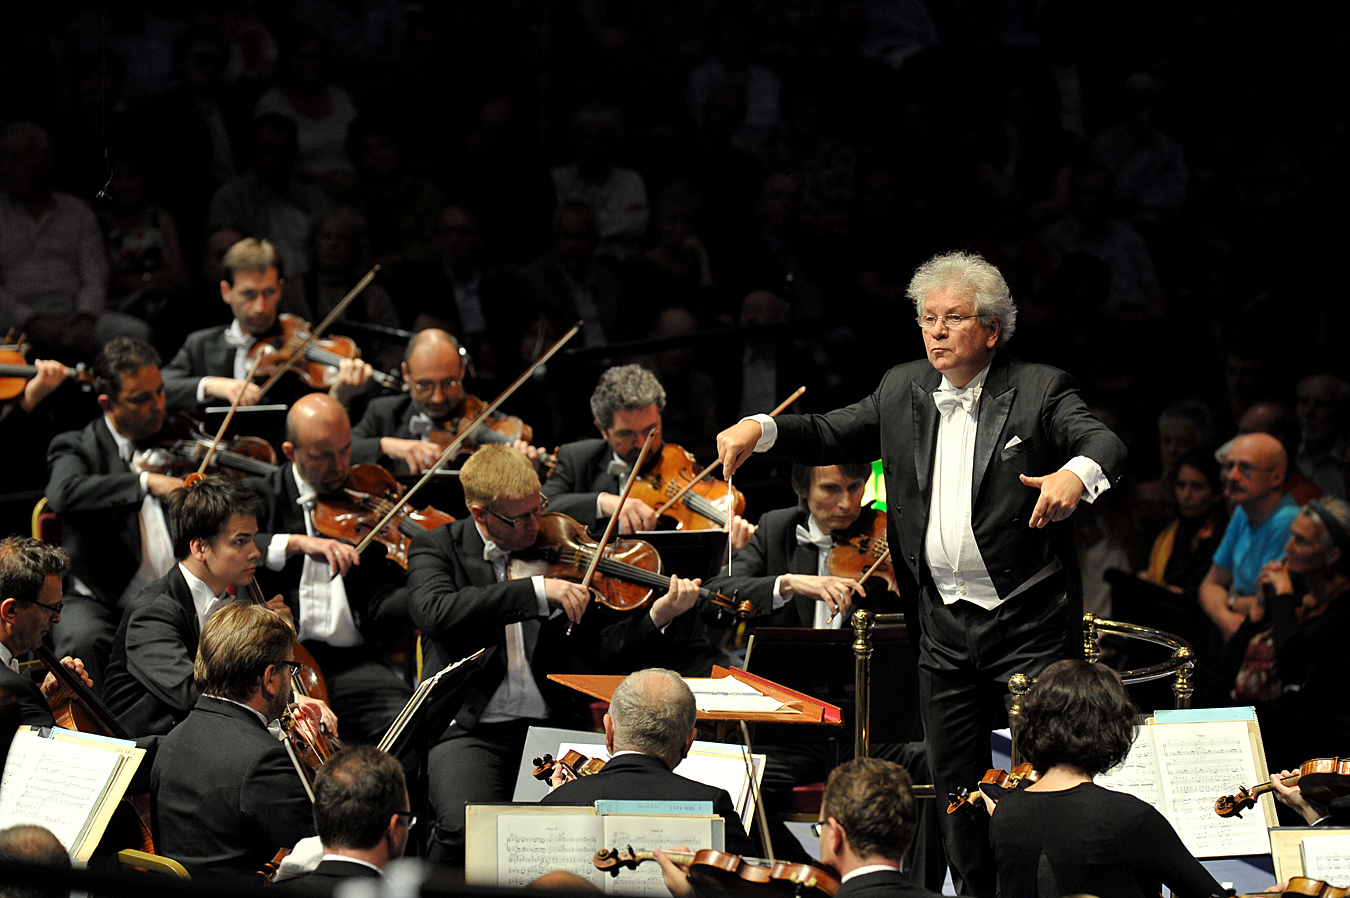 Jiri Belohlavek at the Proms